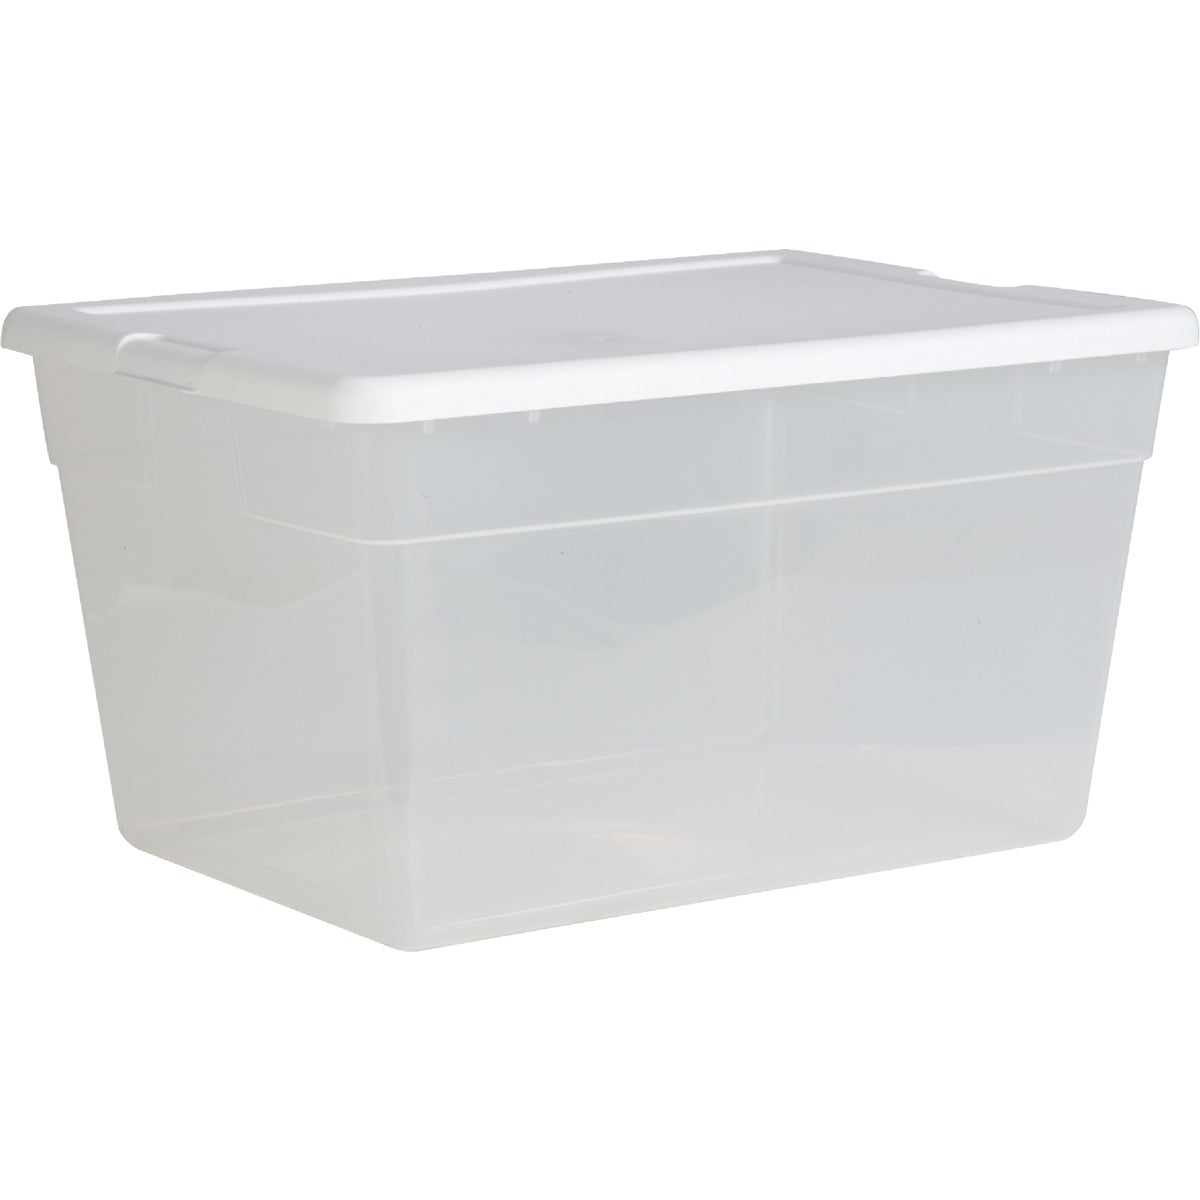 56QT CLEAR STORAGE BOX